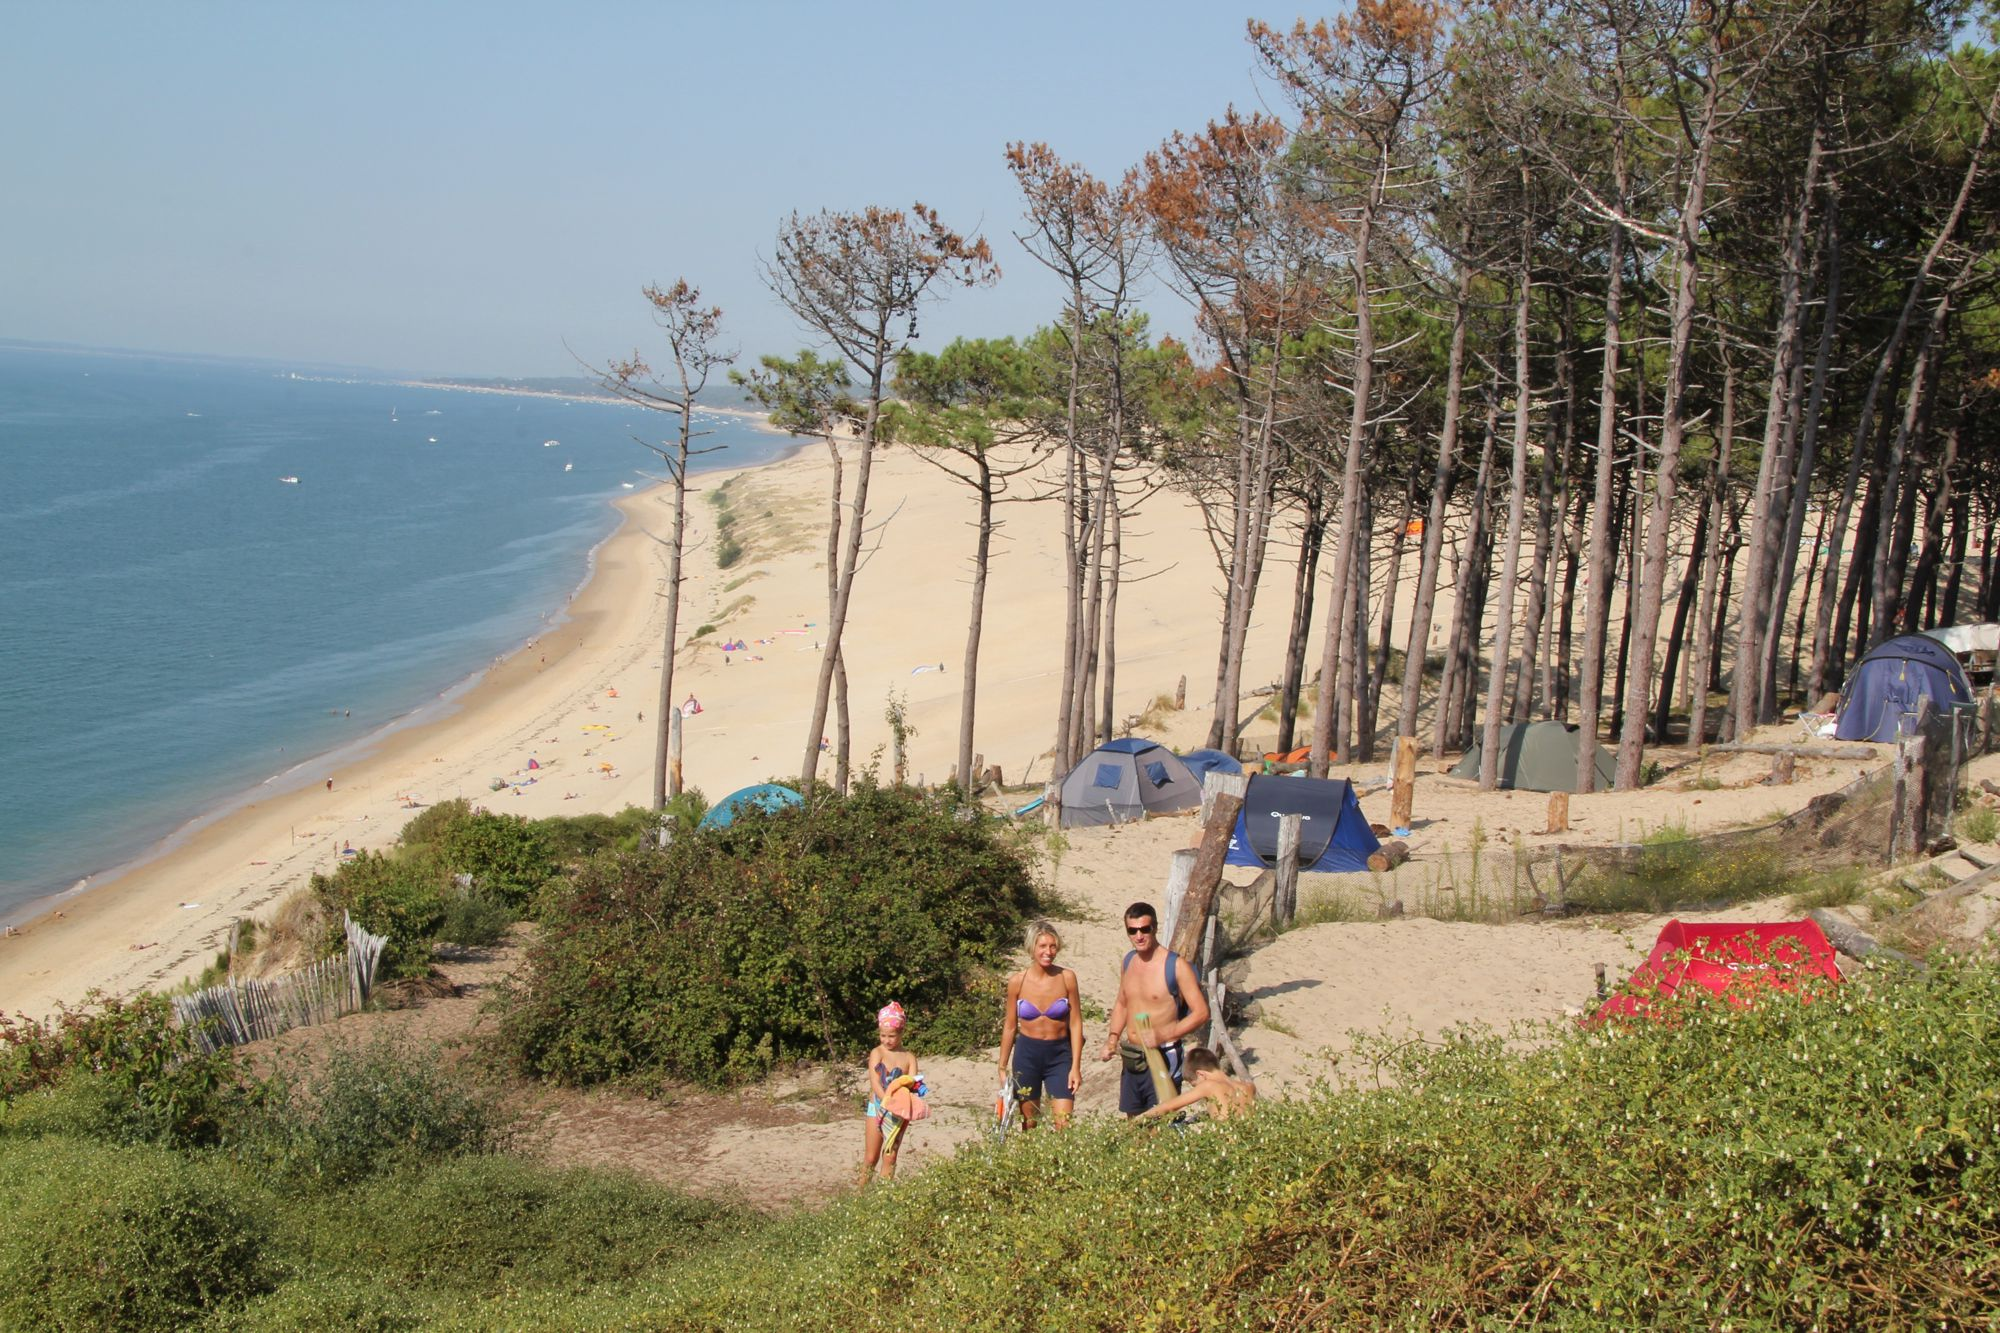 Arcachon – what a great surprise!